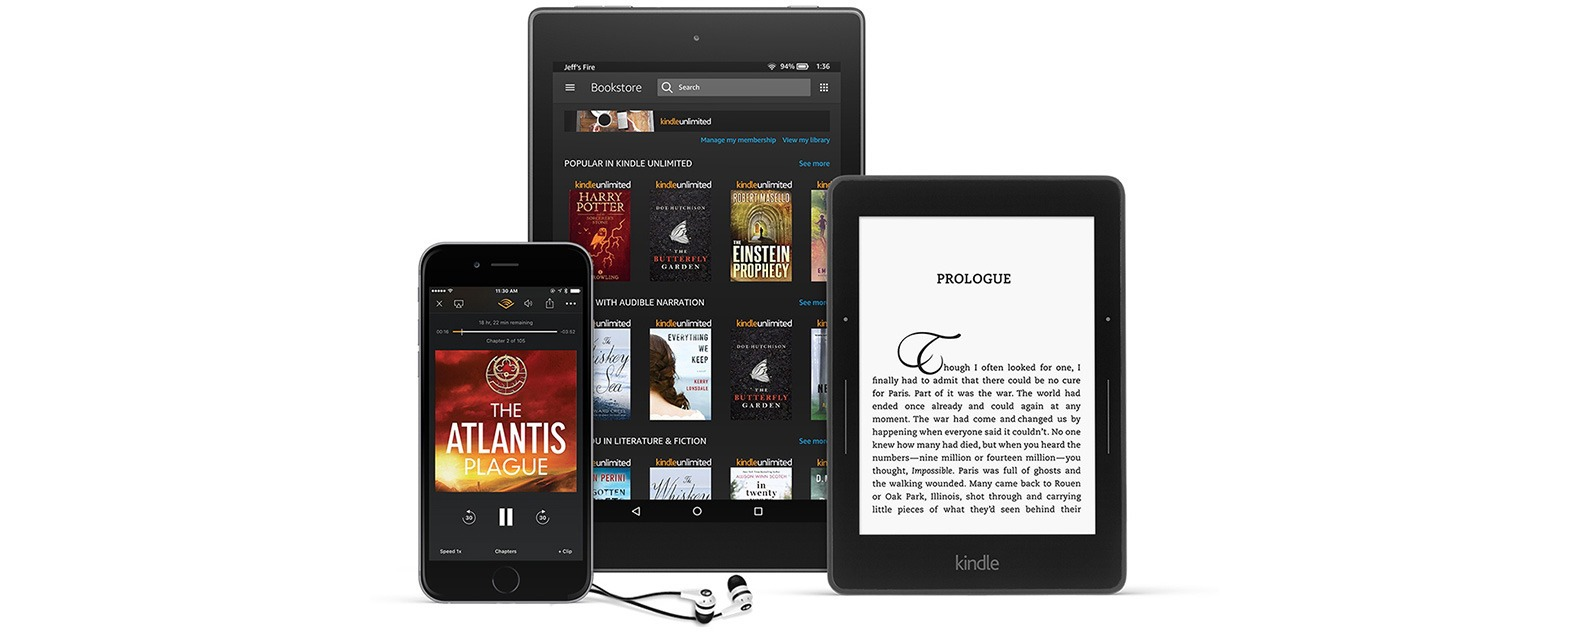 How to Share Kindle Books with Family Members (Setting Up an